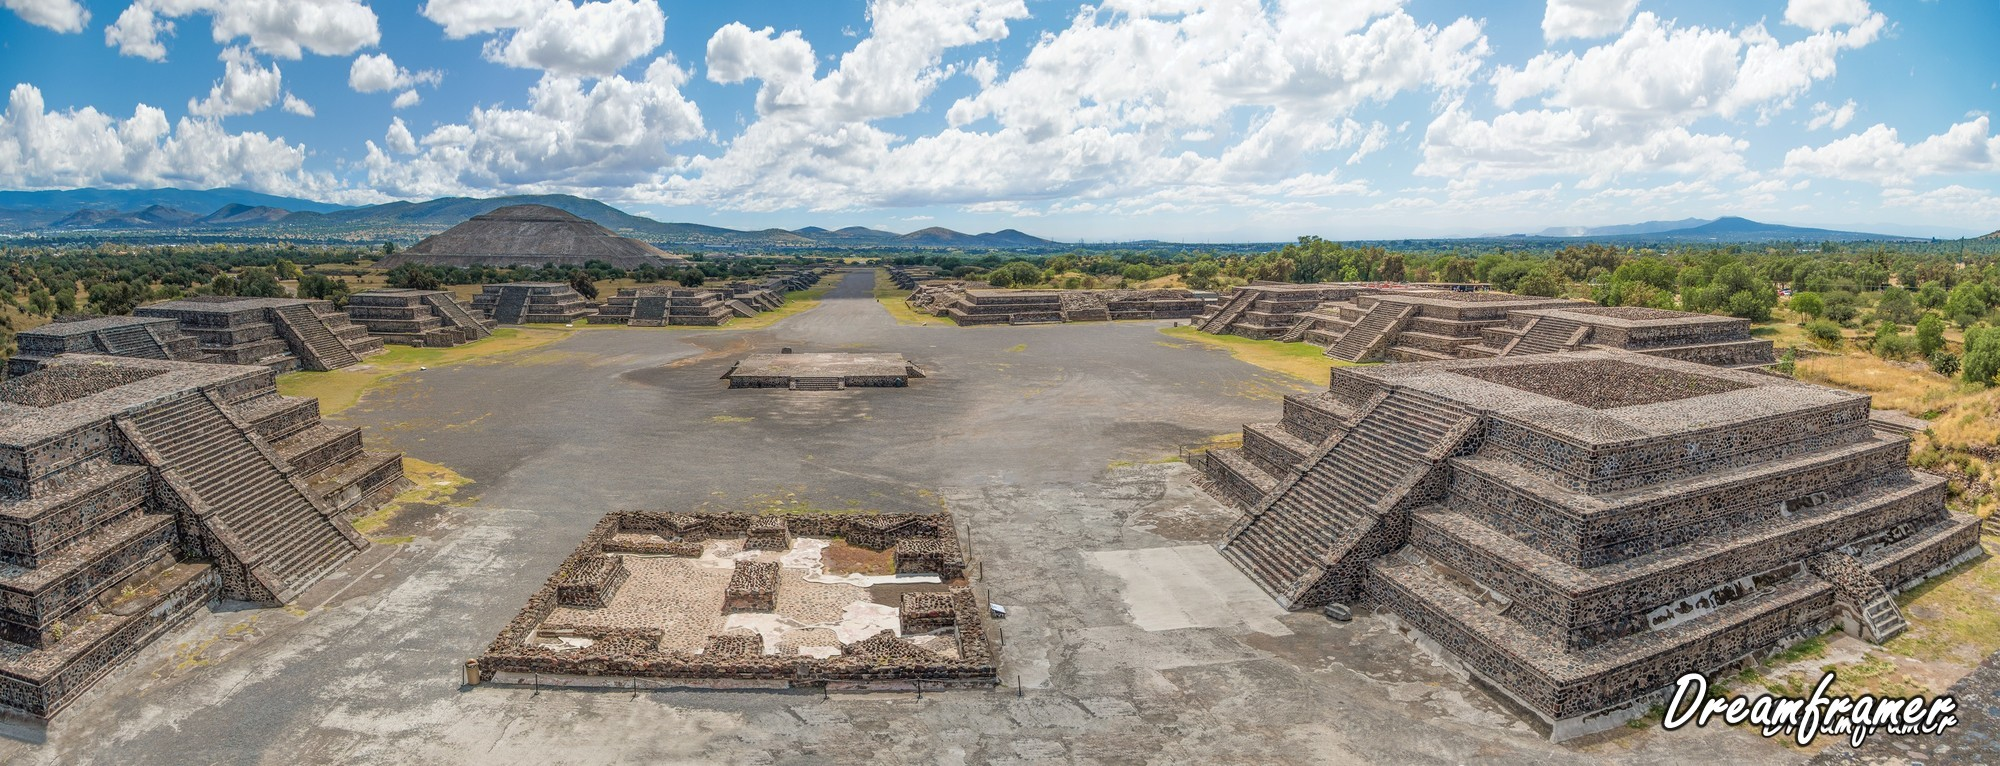 Teotihuacan Avenue of the Dead - ©Dreamframer